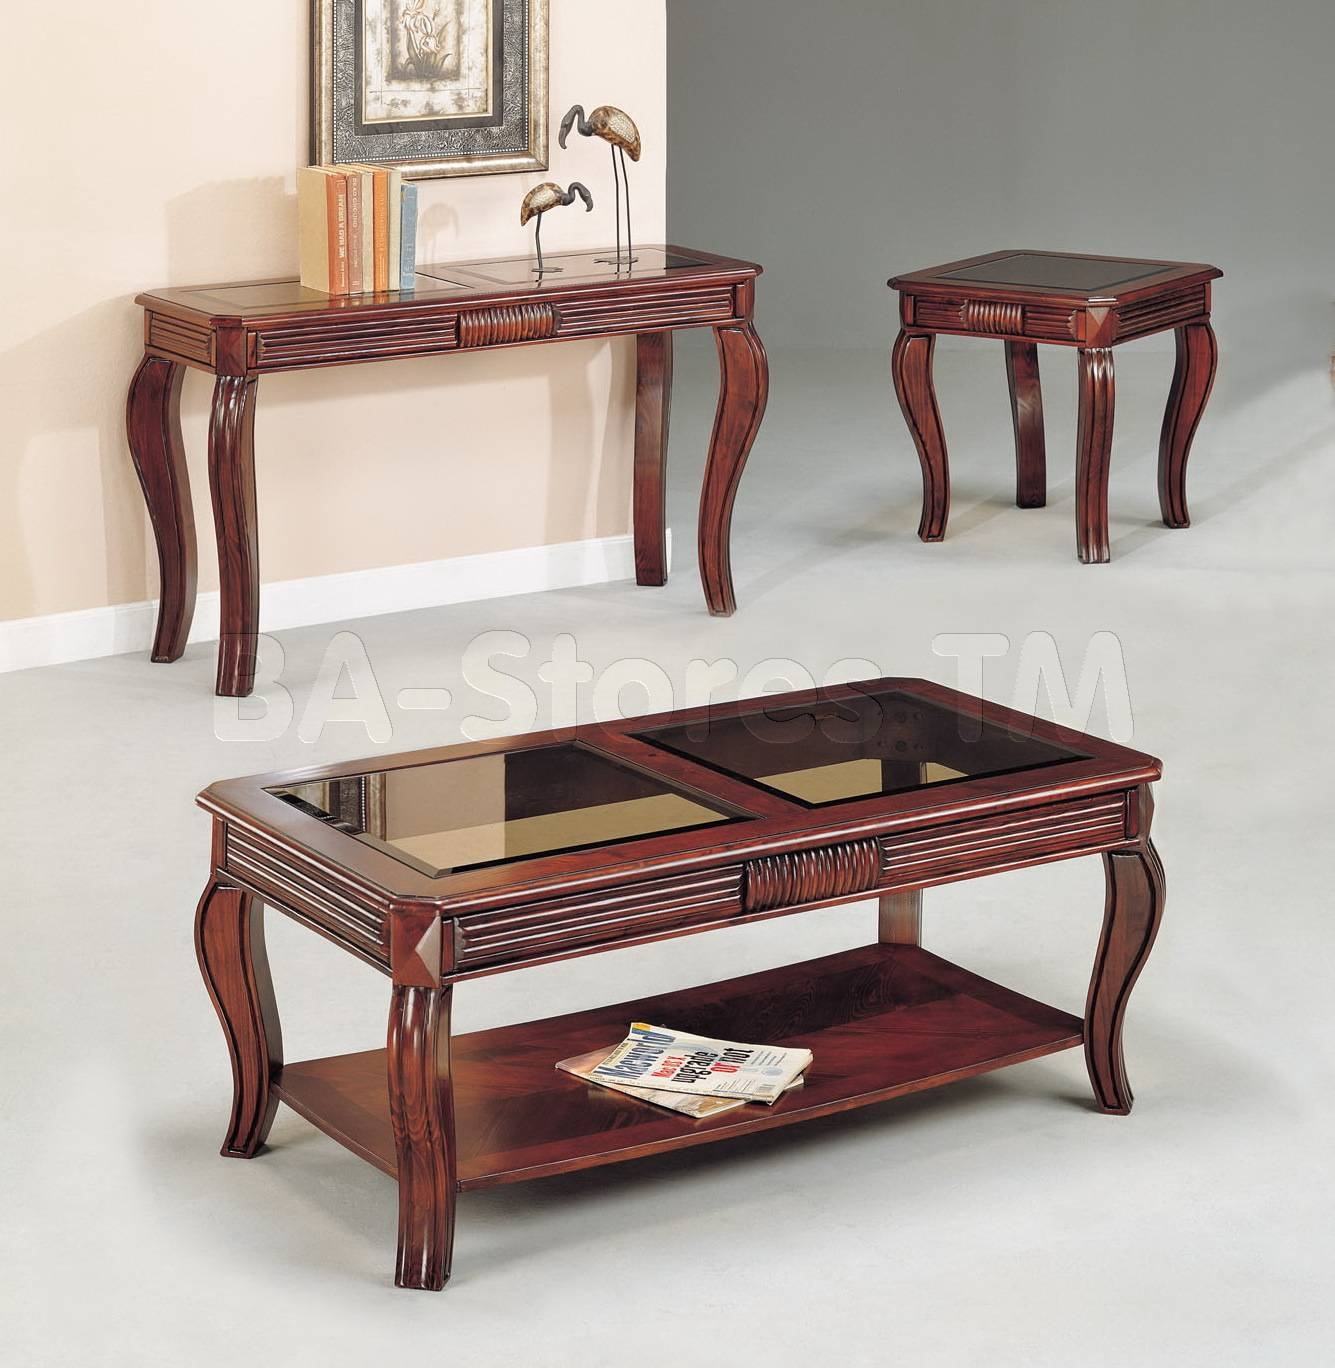 Overture Cherry Sofa Table | Coffee Tables Af-06153/9 with Sofa Table Chairs (Image 22 of 30)